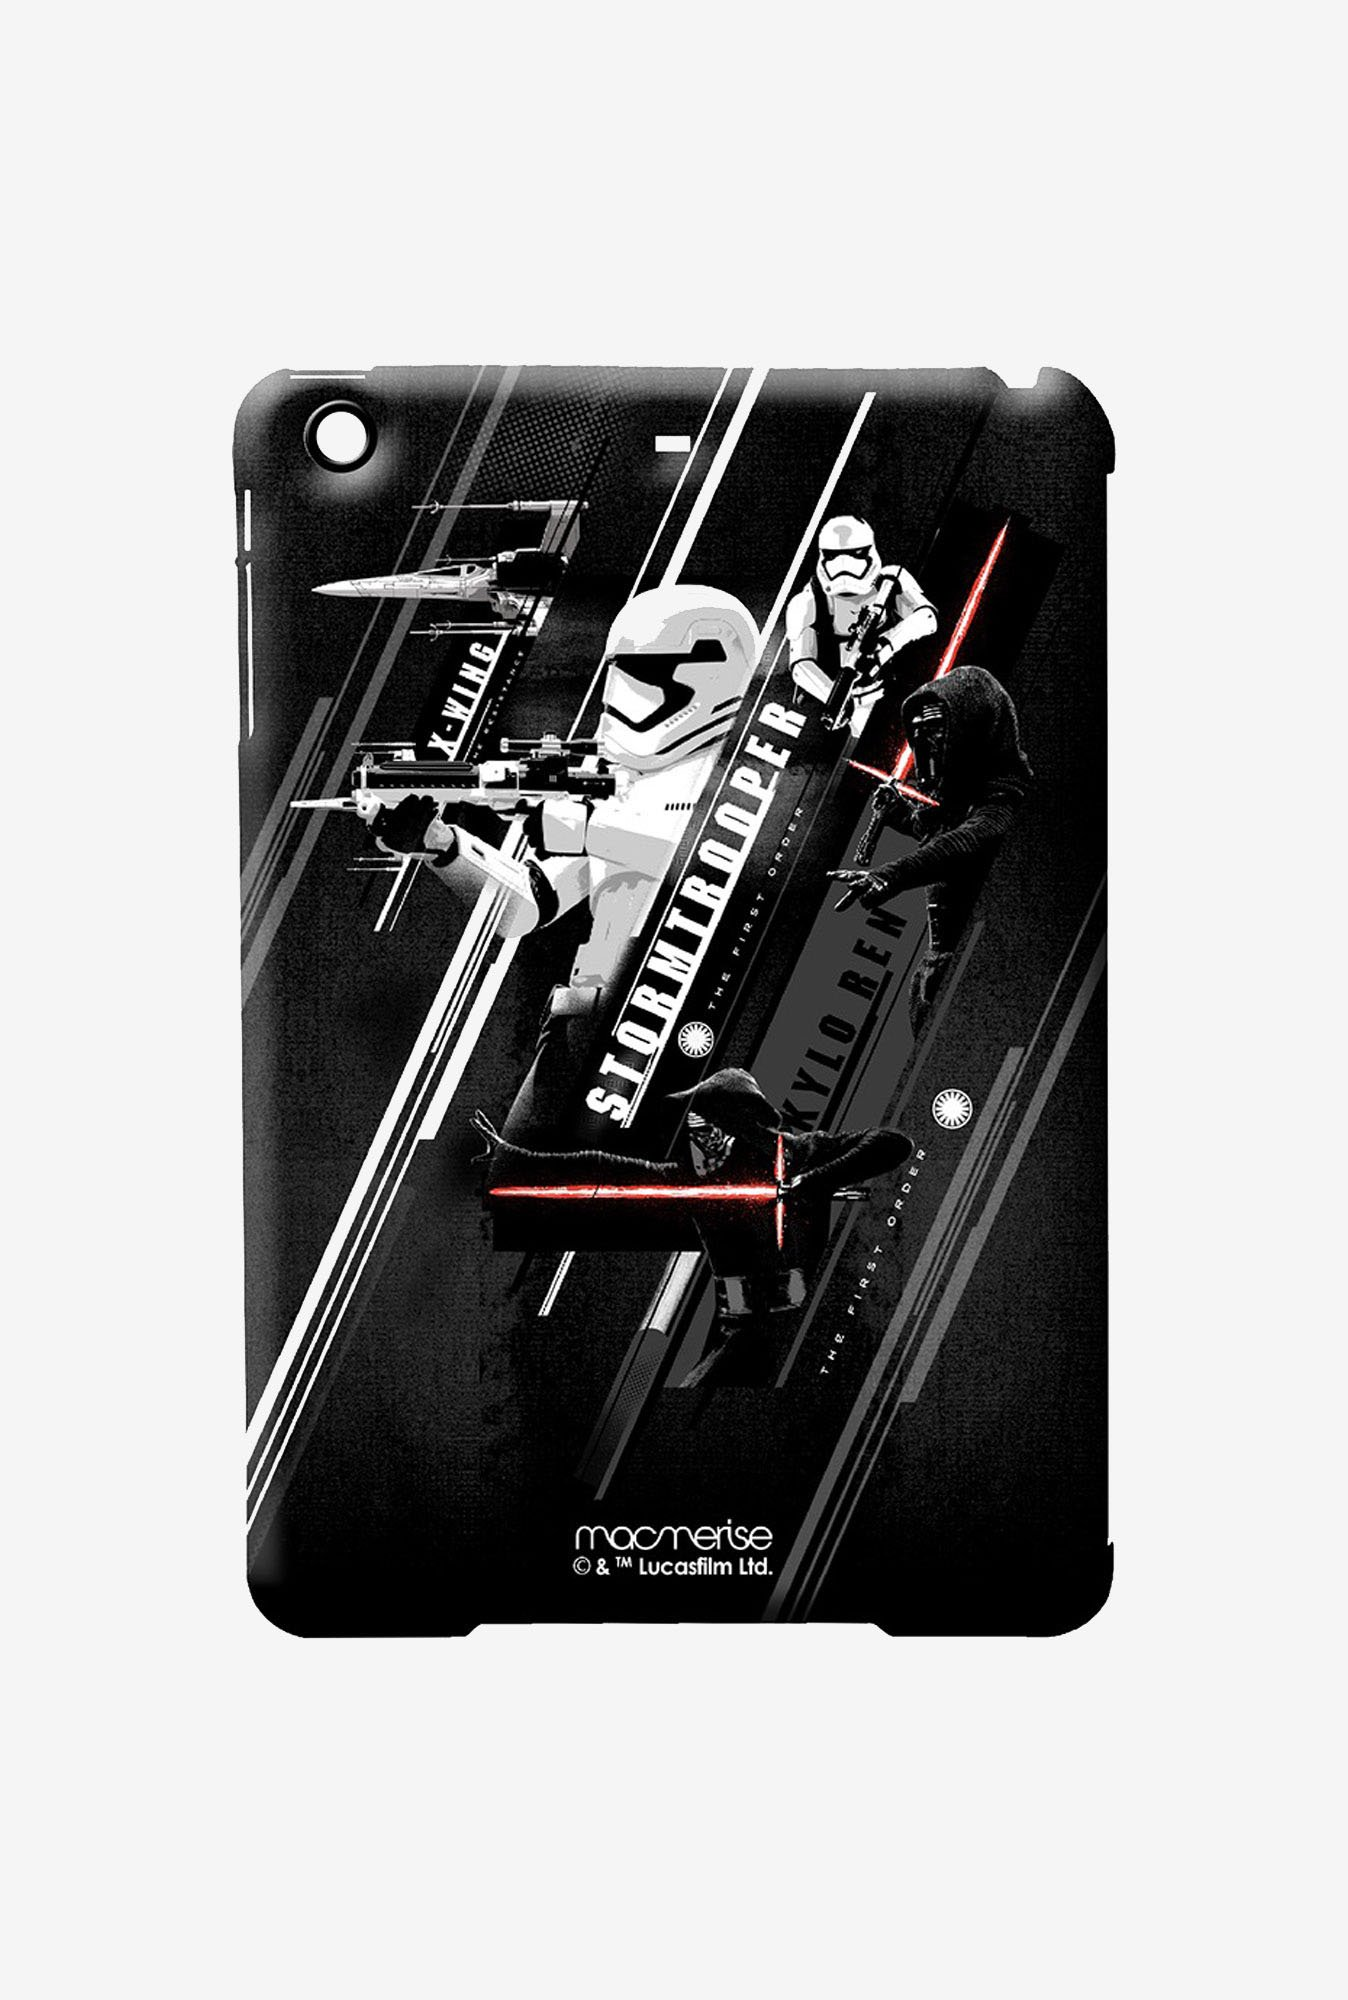 Macmerise Episode VII Pro Case for iPad Air